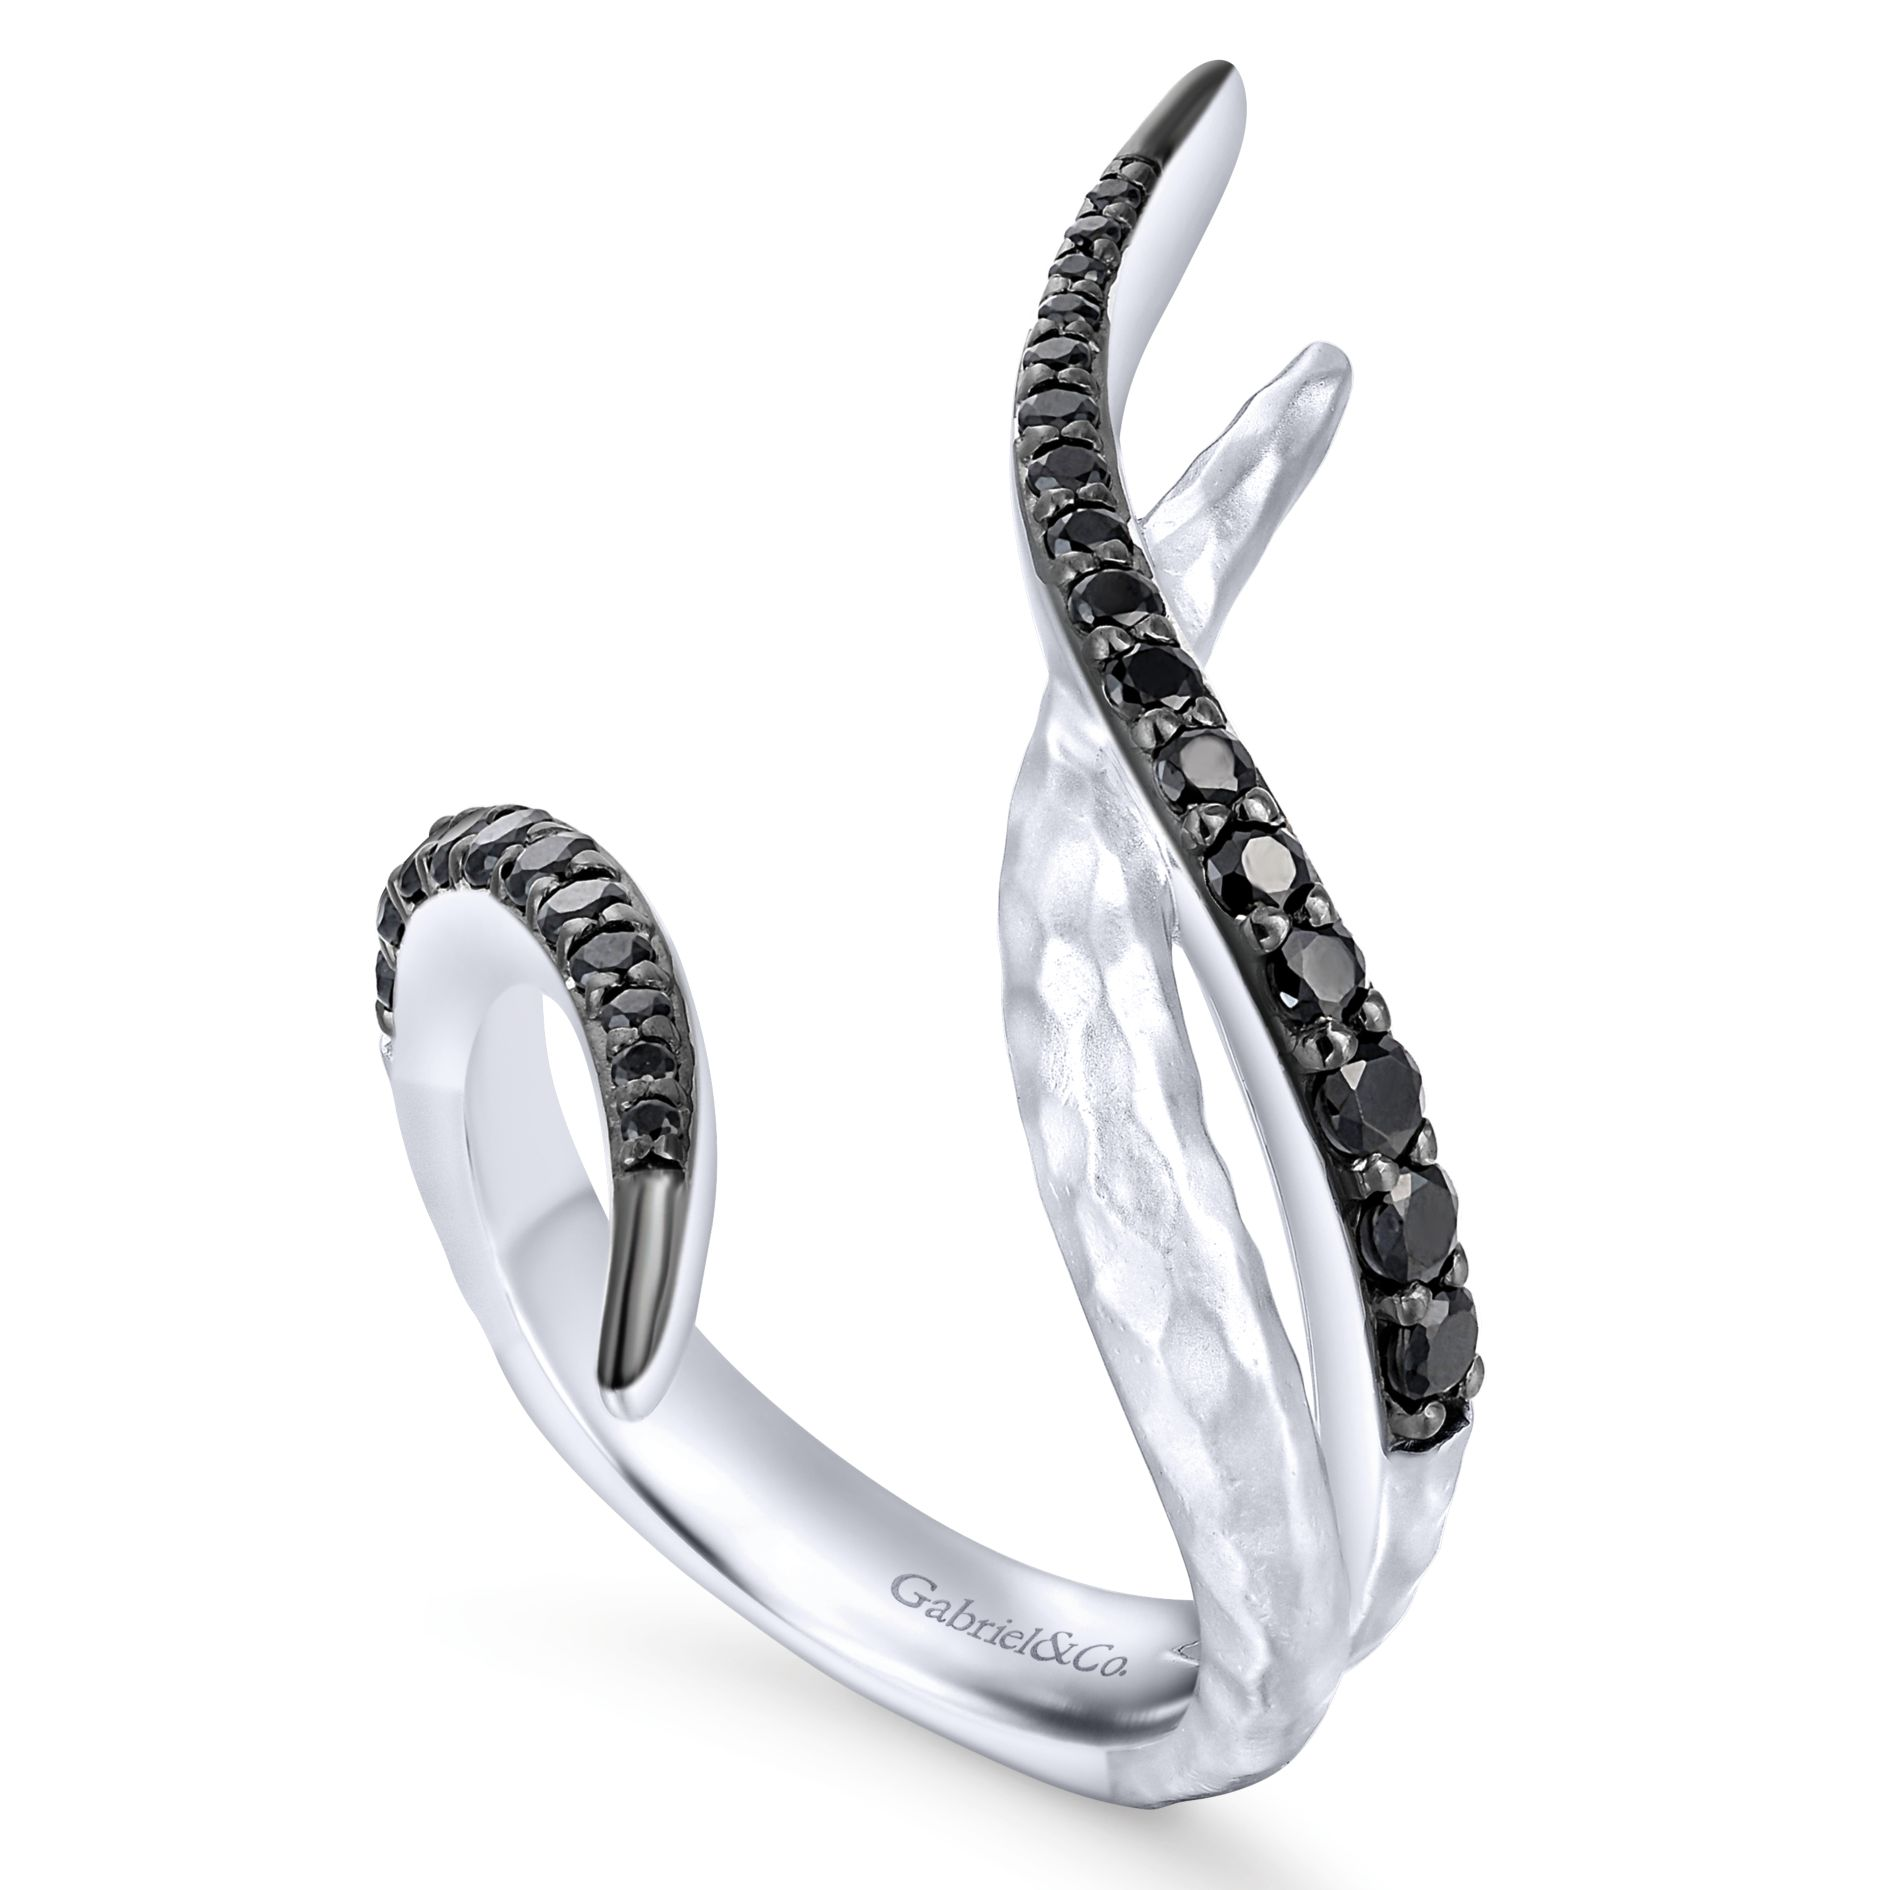 Rings - SILVER FASHION BLACK SPINEL LADIES RING - image #3